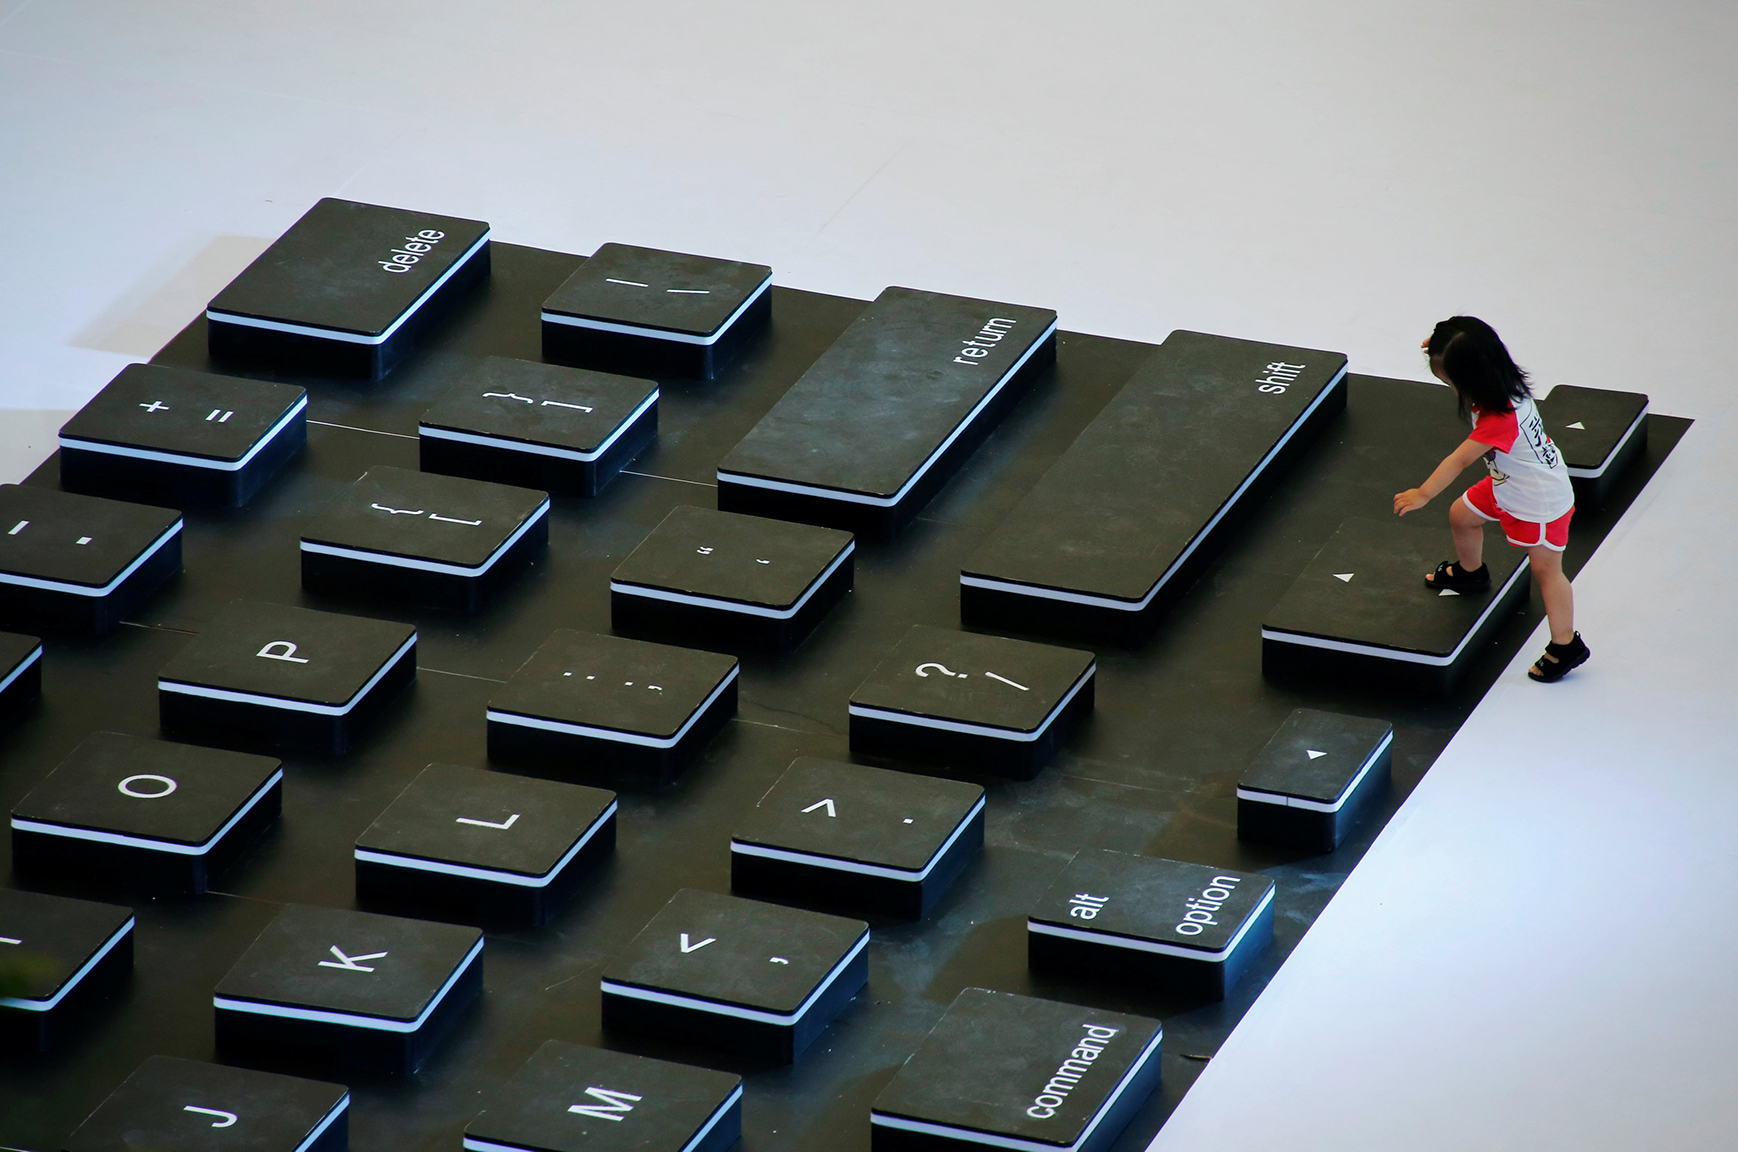 A child climbs onto a giant mockup laptop keyboard during a promotion event at a shopping centre in Beijing